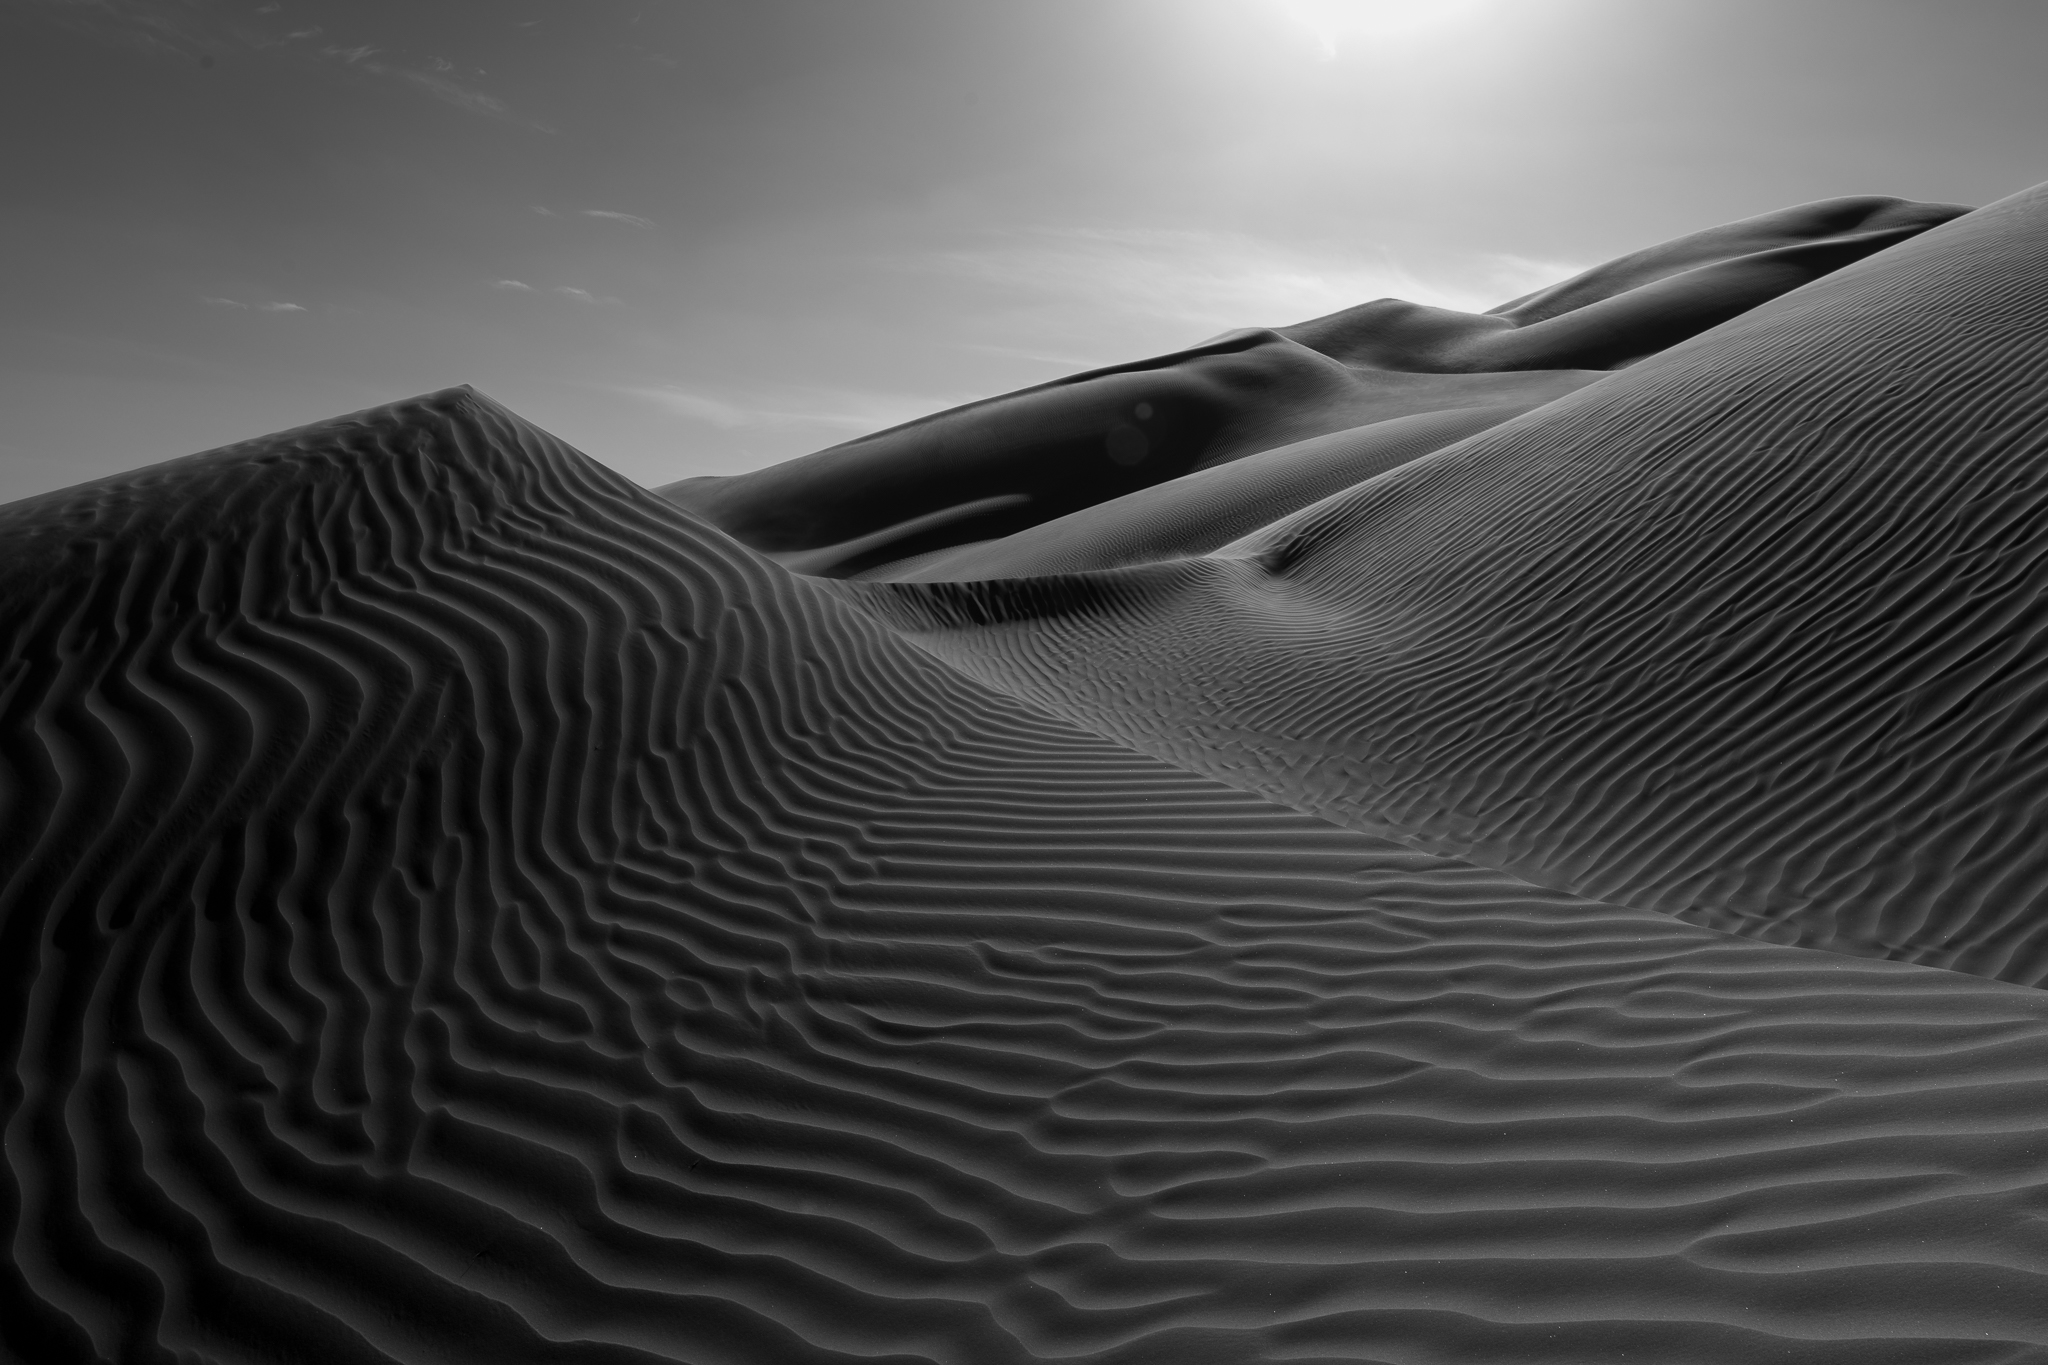 Monochrome conversion emphasizes the shape and texture of the dunes.